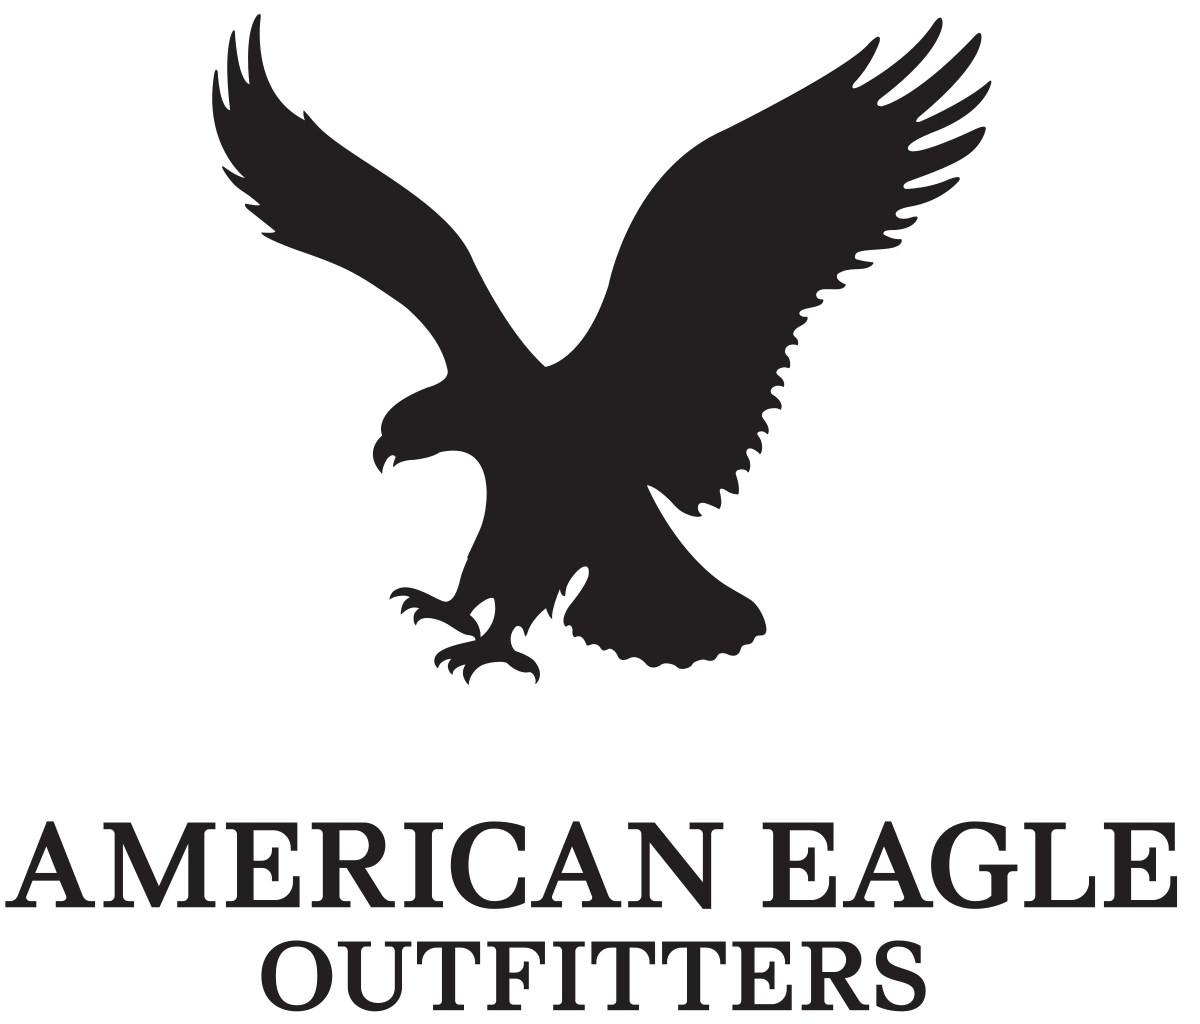 American Eagle Outfitters.